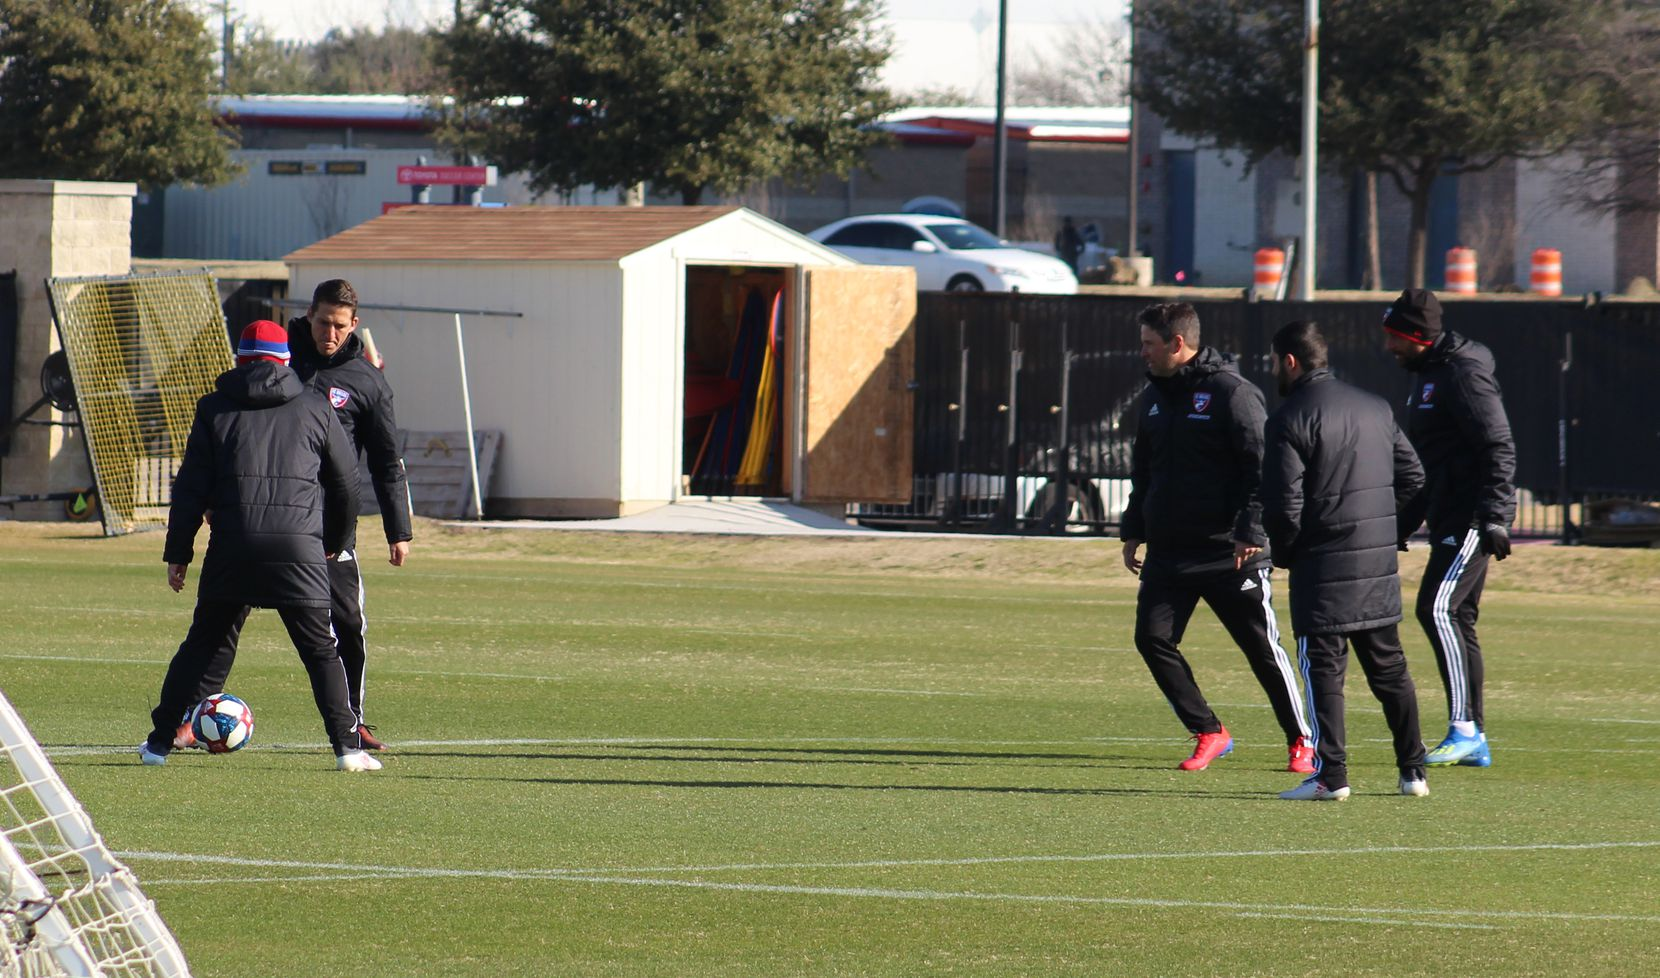 January 26, 2019 (Frisco, TX): FC Dallas coaches (L-R) Luchi Gonzalez (back to shot, wearing a hat), Mikey Varas, Eric Quill, Skylar Richards, and Peter Luccin take part in a rondo passing drill as the FC Dallas players warm up at Toyota Soccer Center.